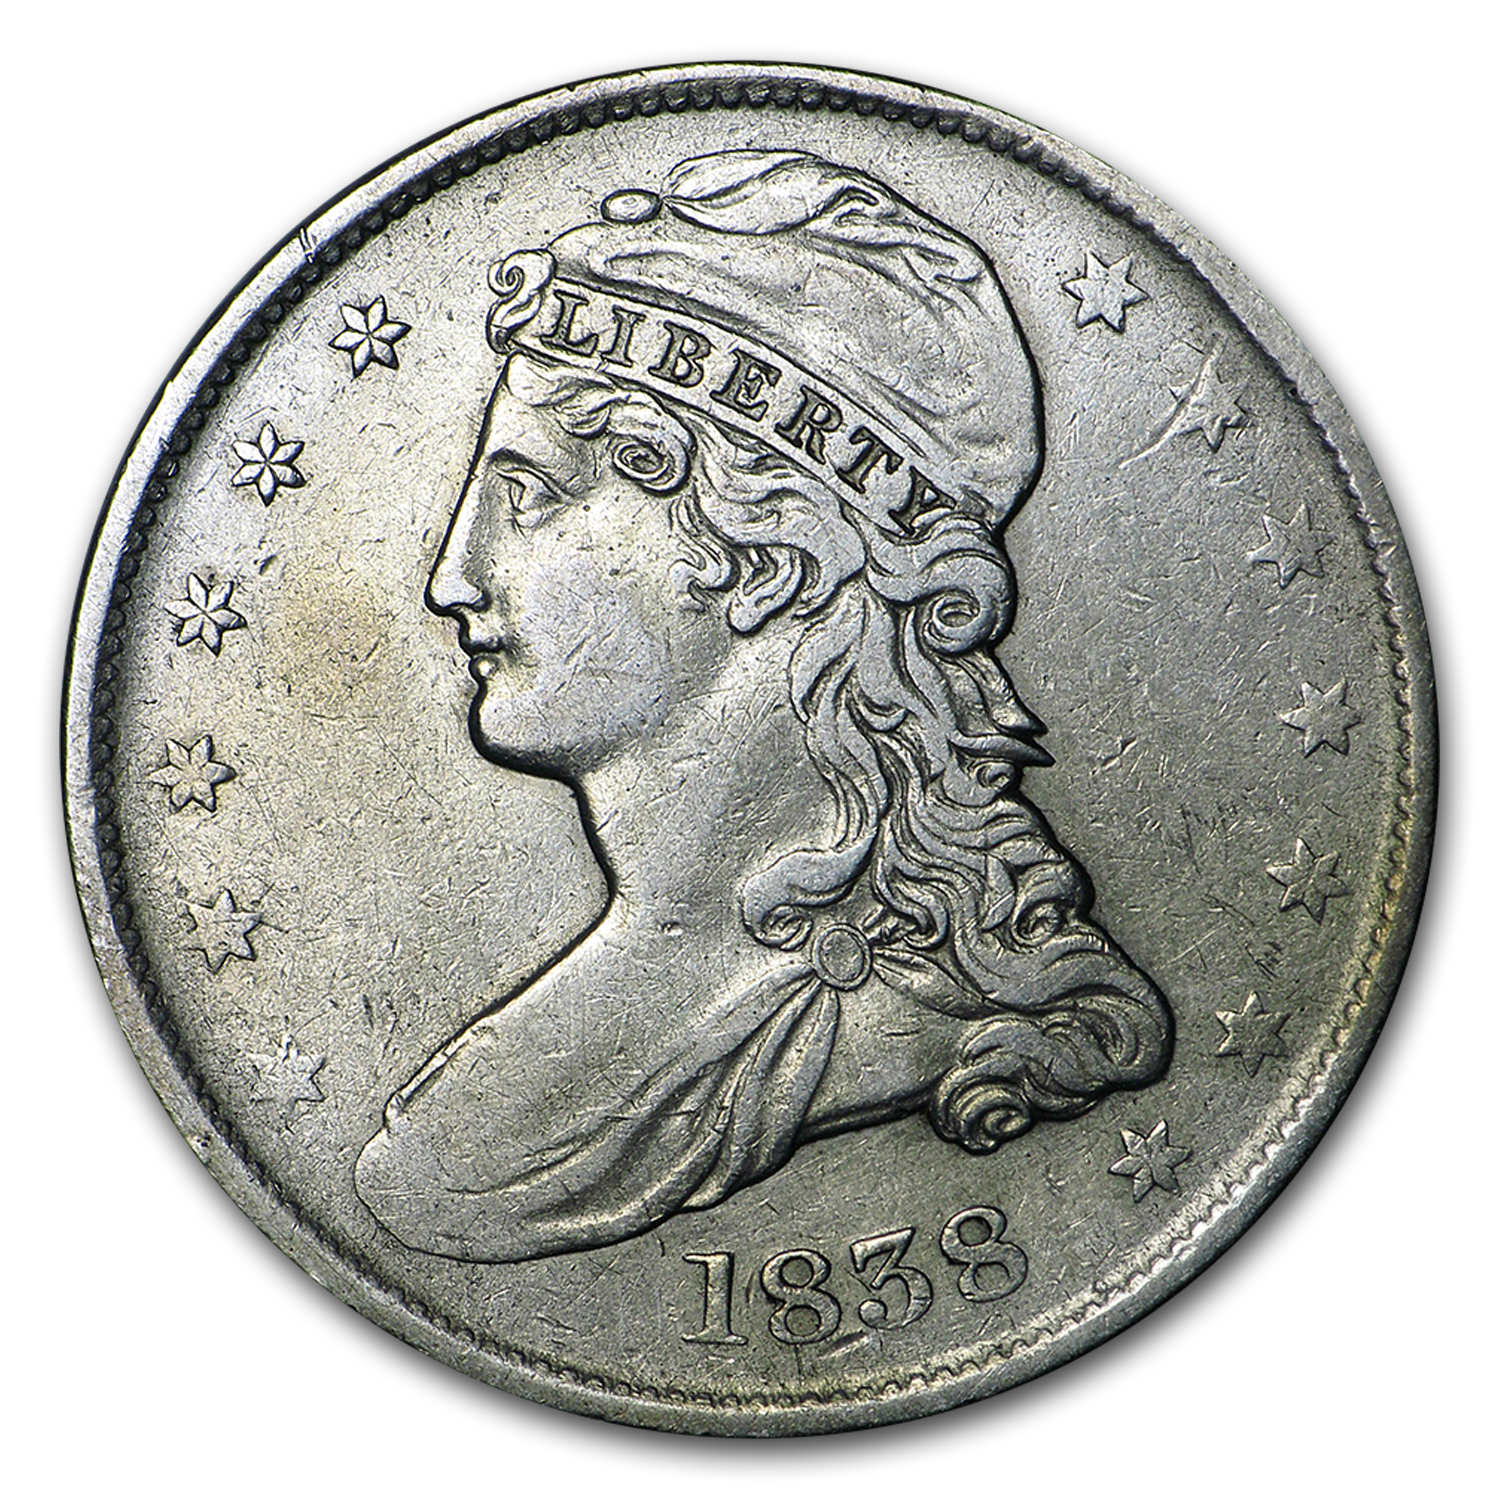 1838 Reeded Edge Half Dollar XF